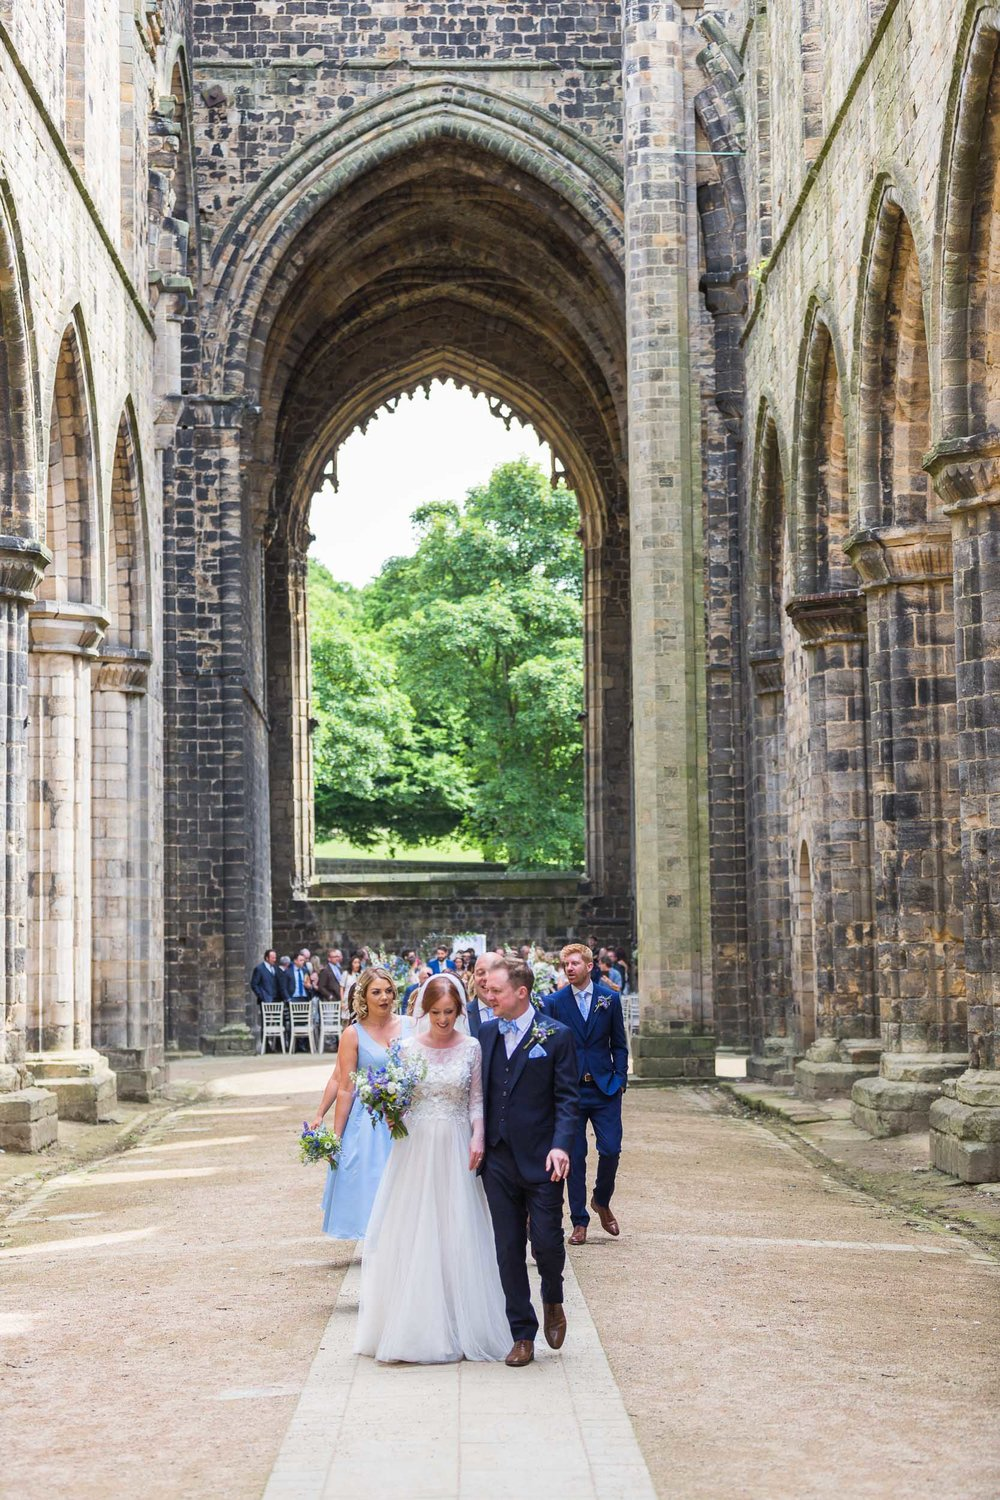 Amy & Oliver-Wedding Part II-Kirkstall Abbey-Leeds-photo-0230.jpg